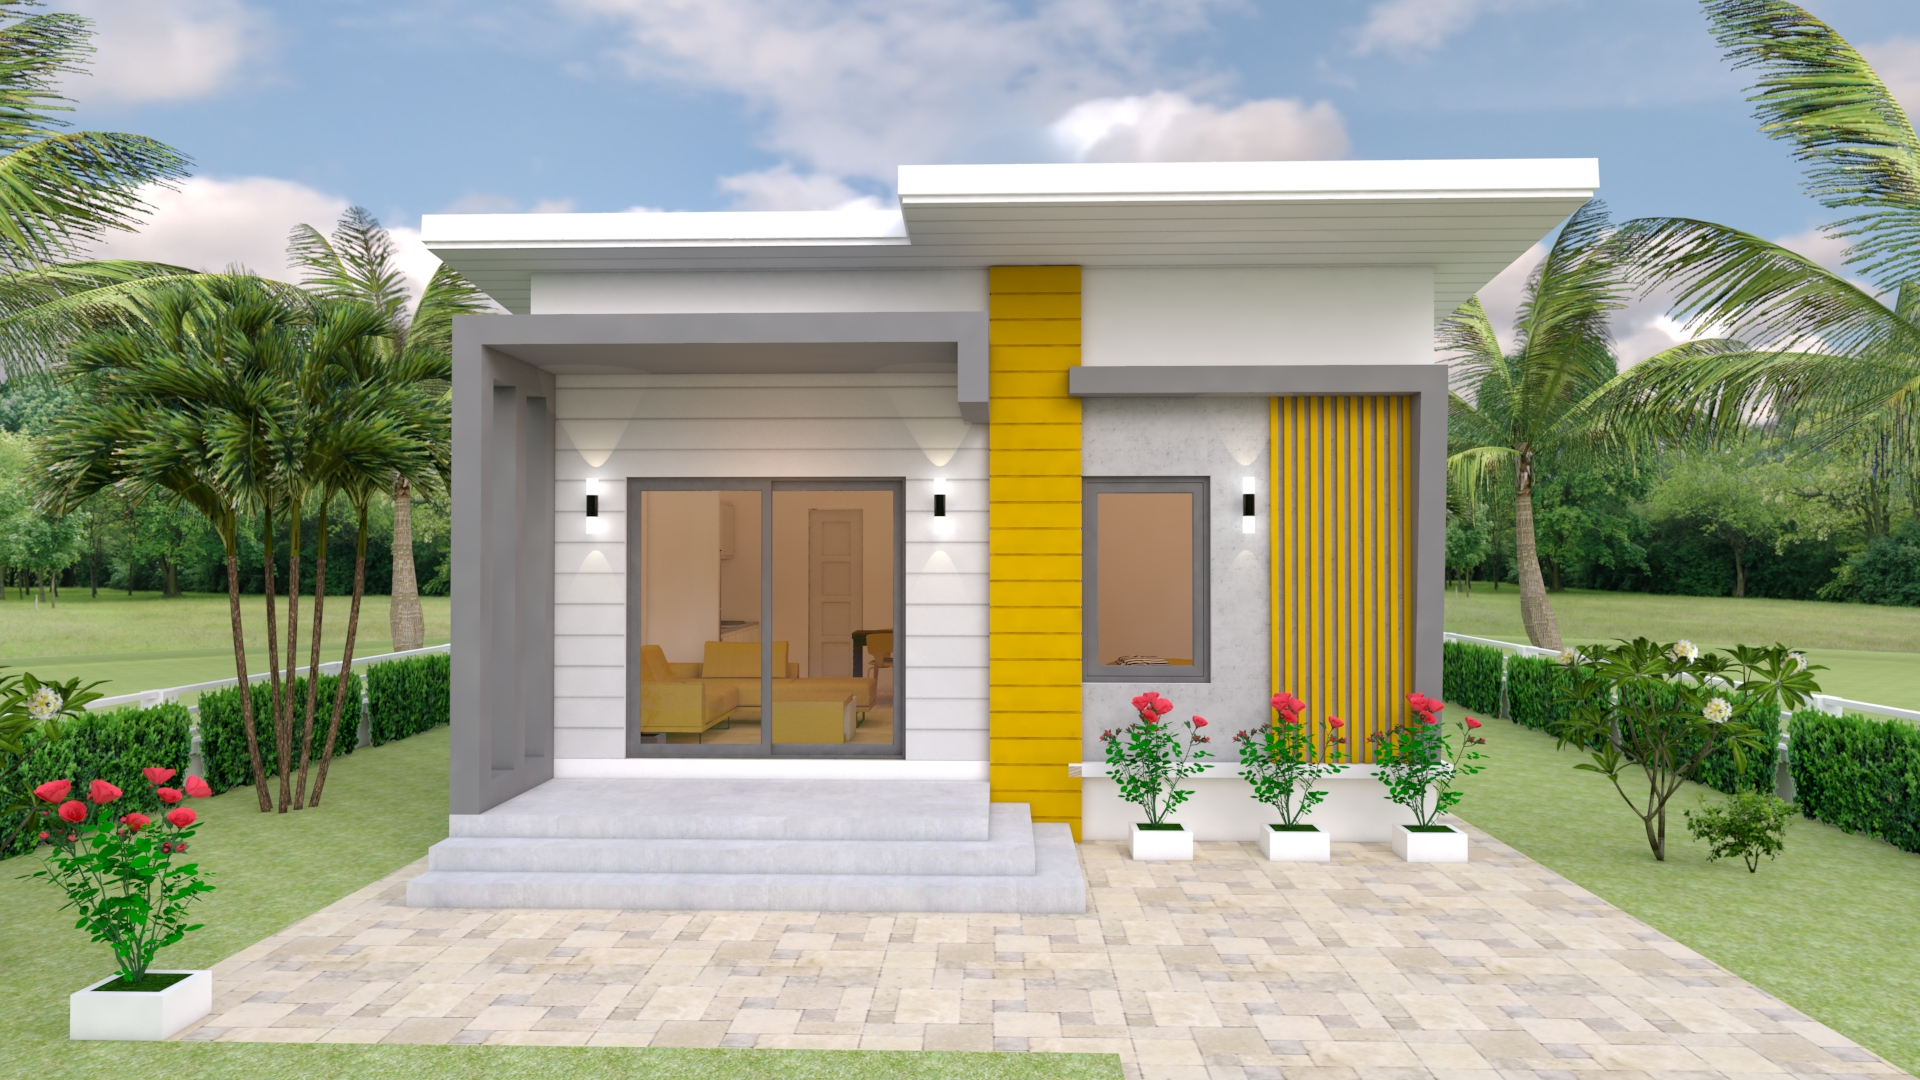 Small Family House 7x12 Meter 23x40 Feet 2 Beds 1